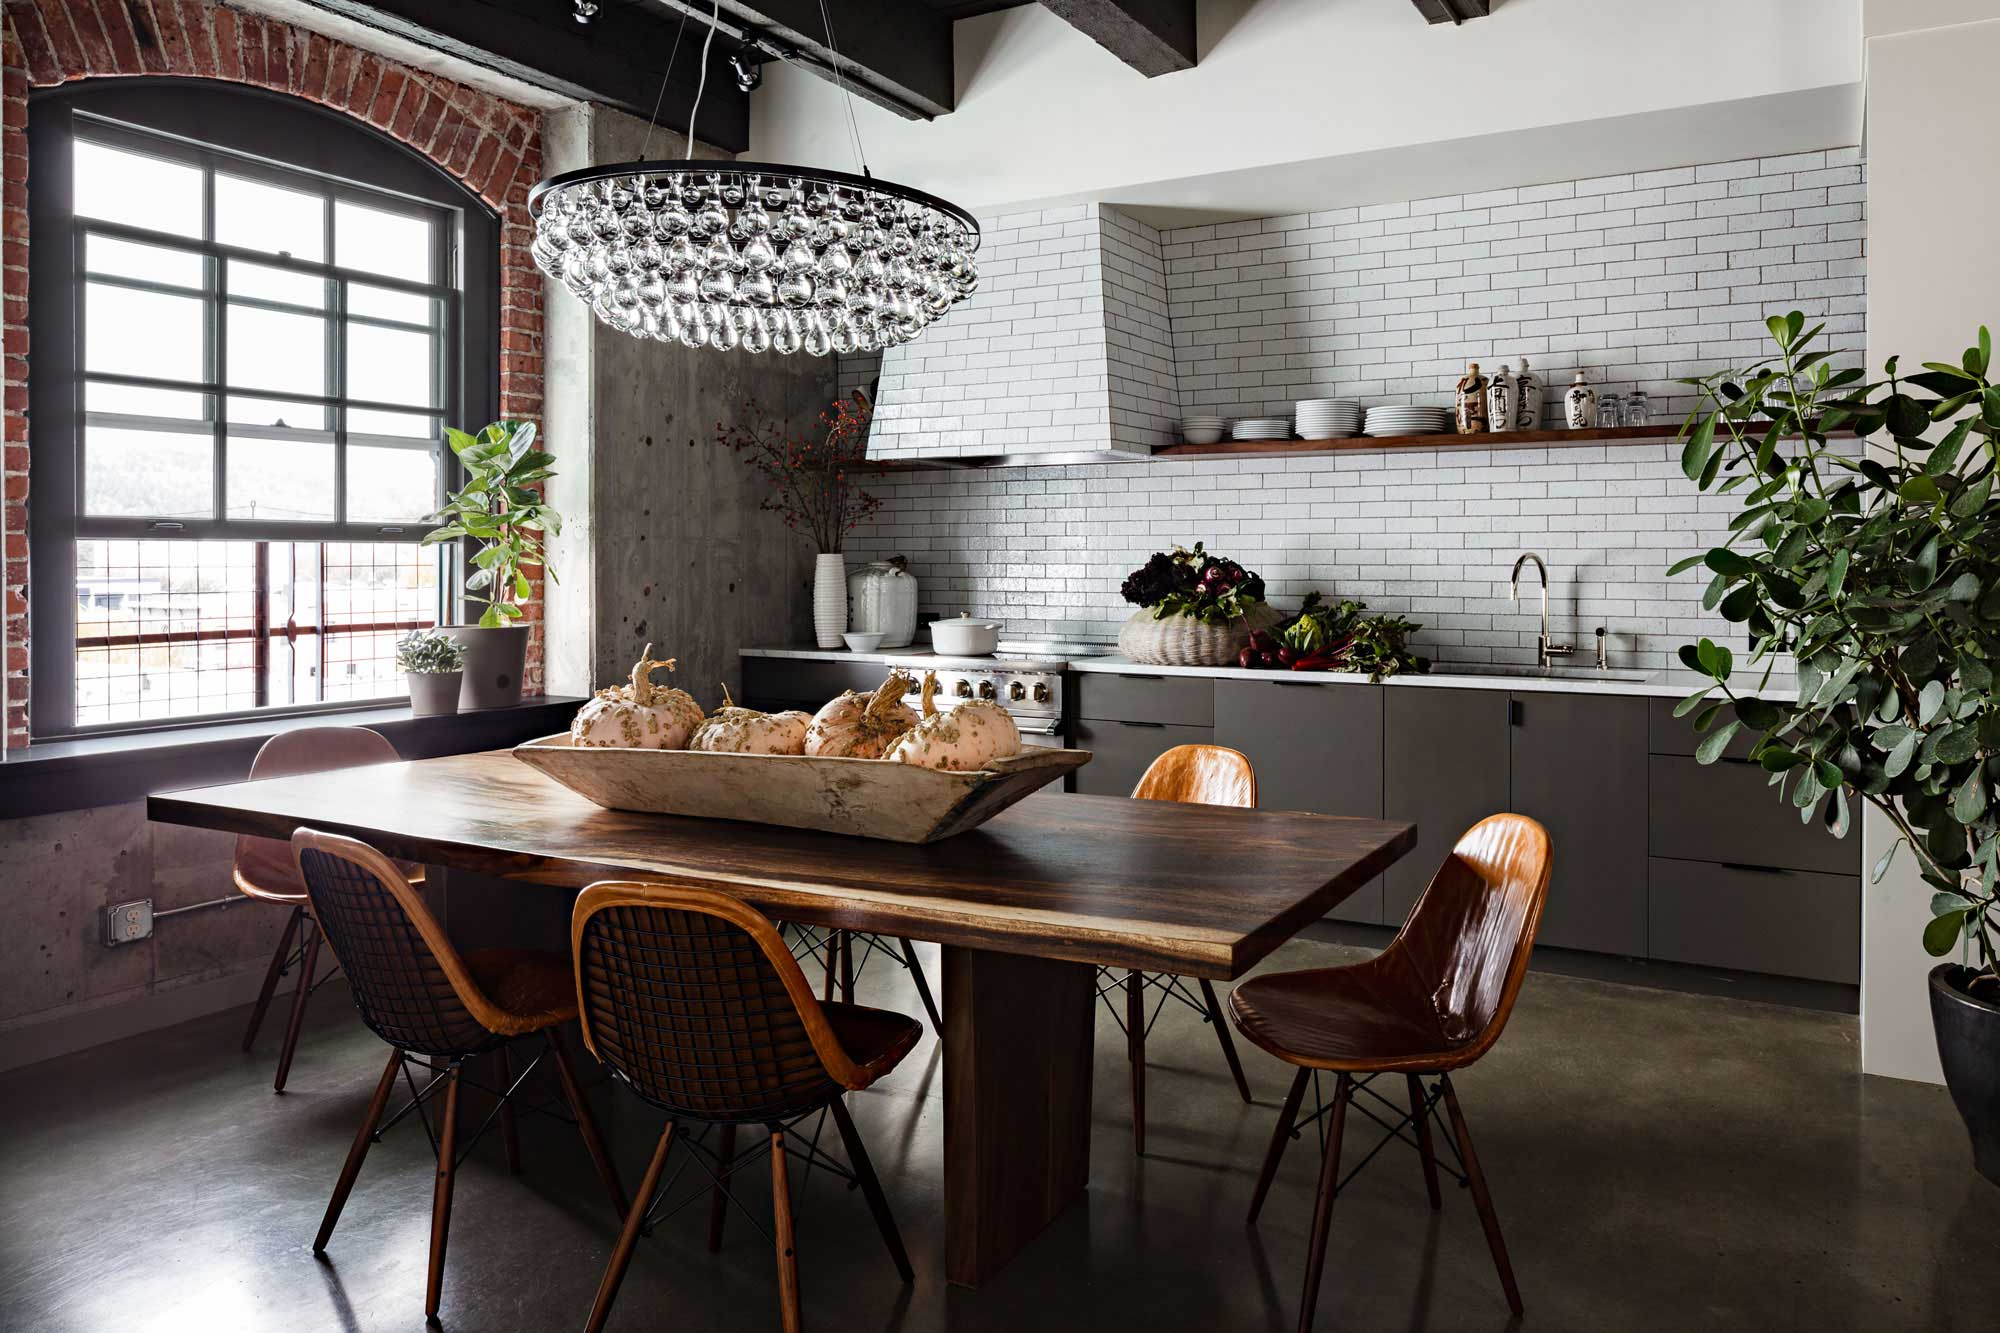 Interior Design and Architecture in the Pacific Northwest Northwest Style